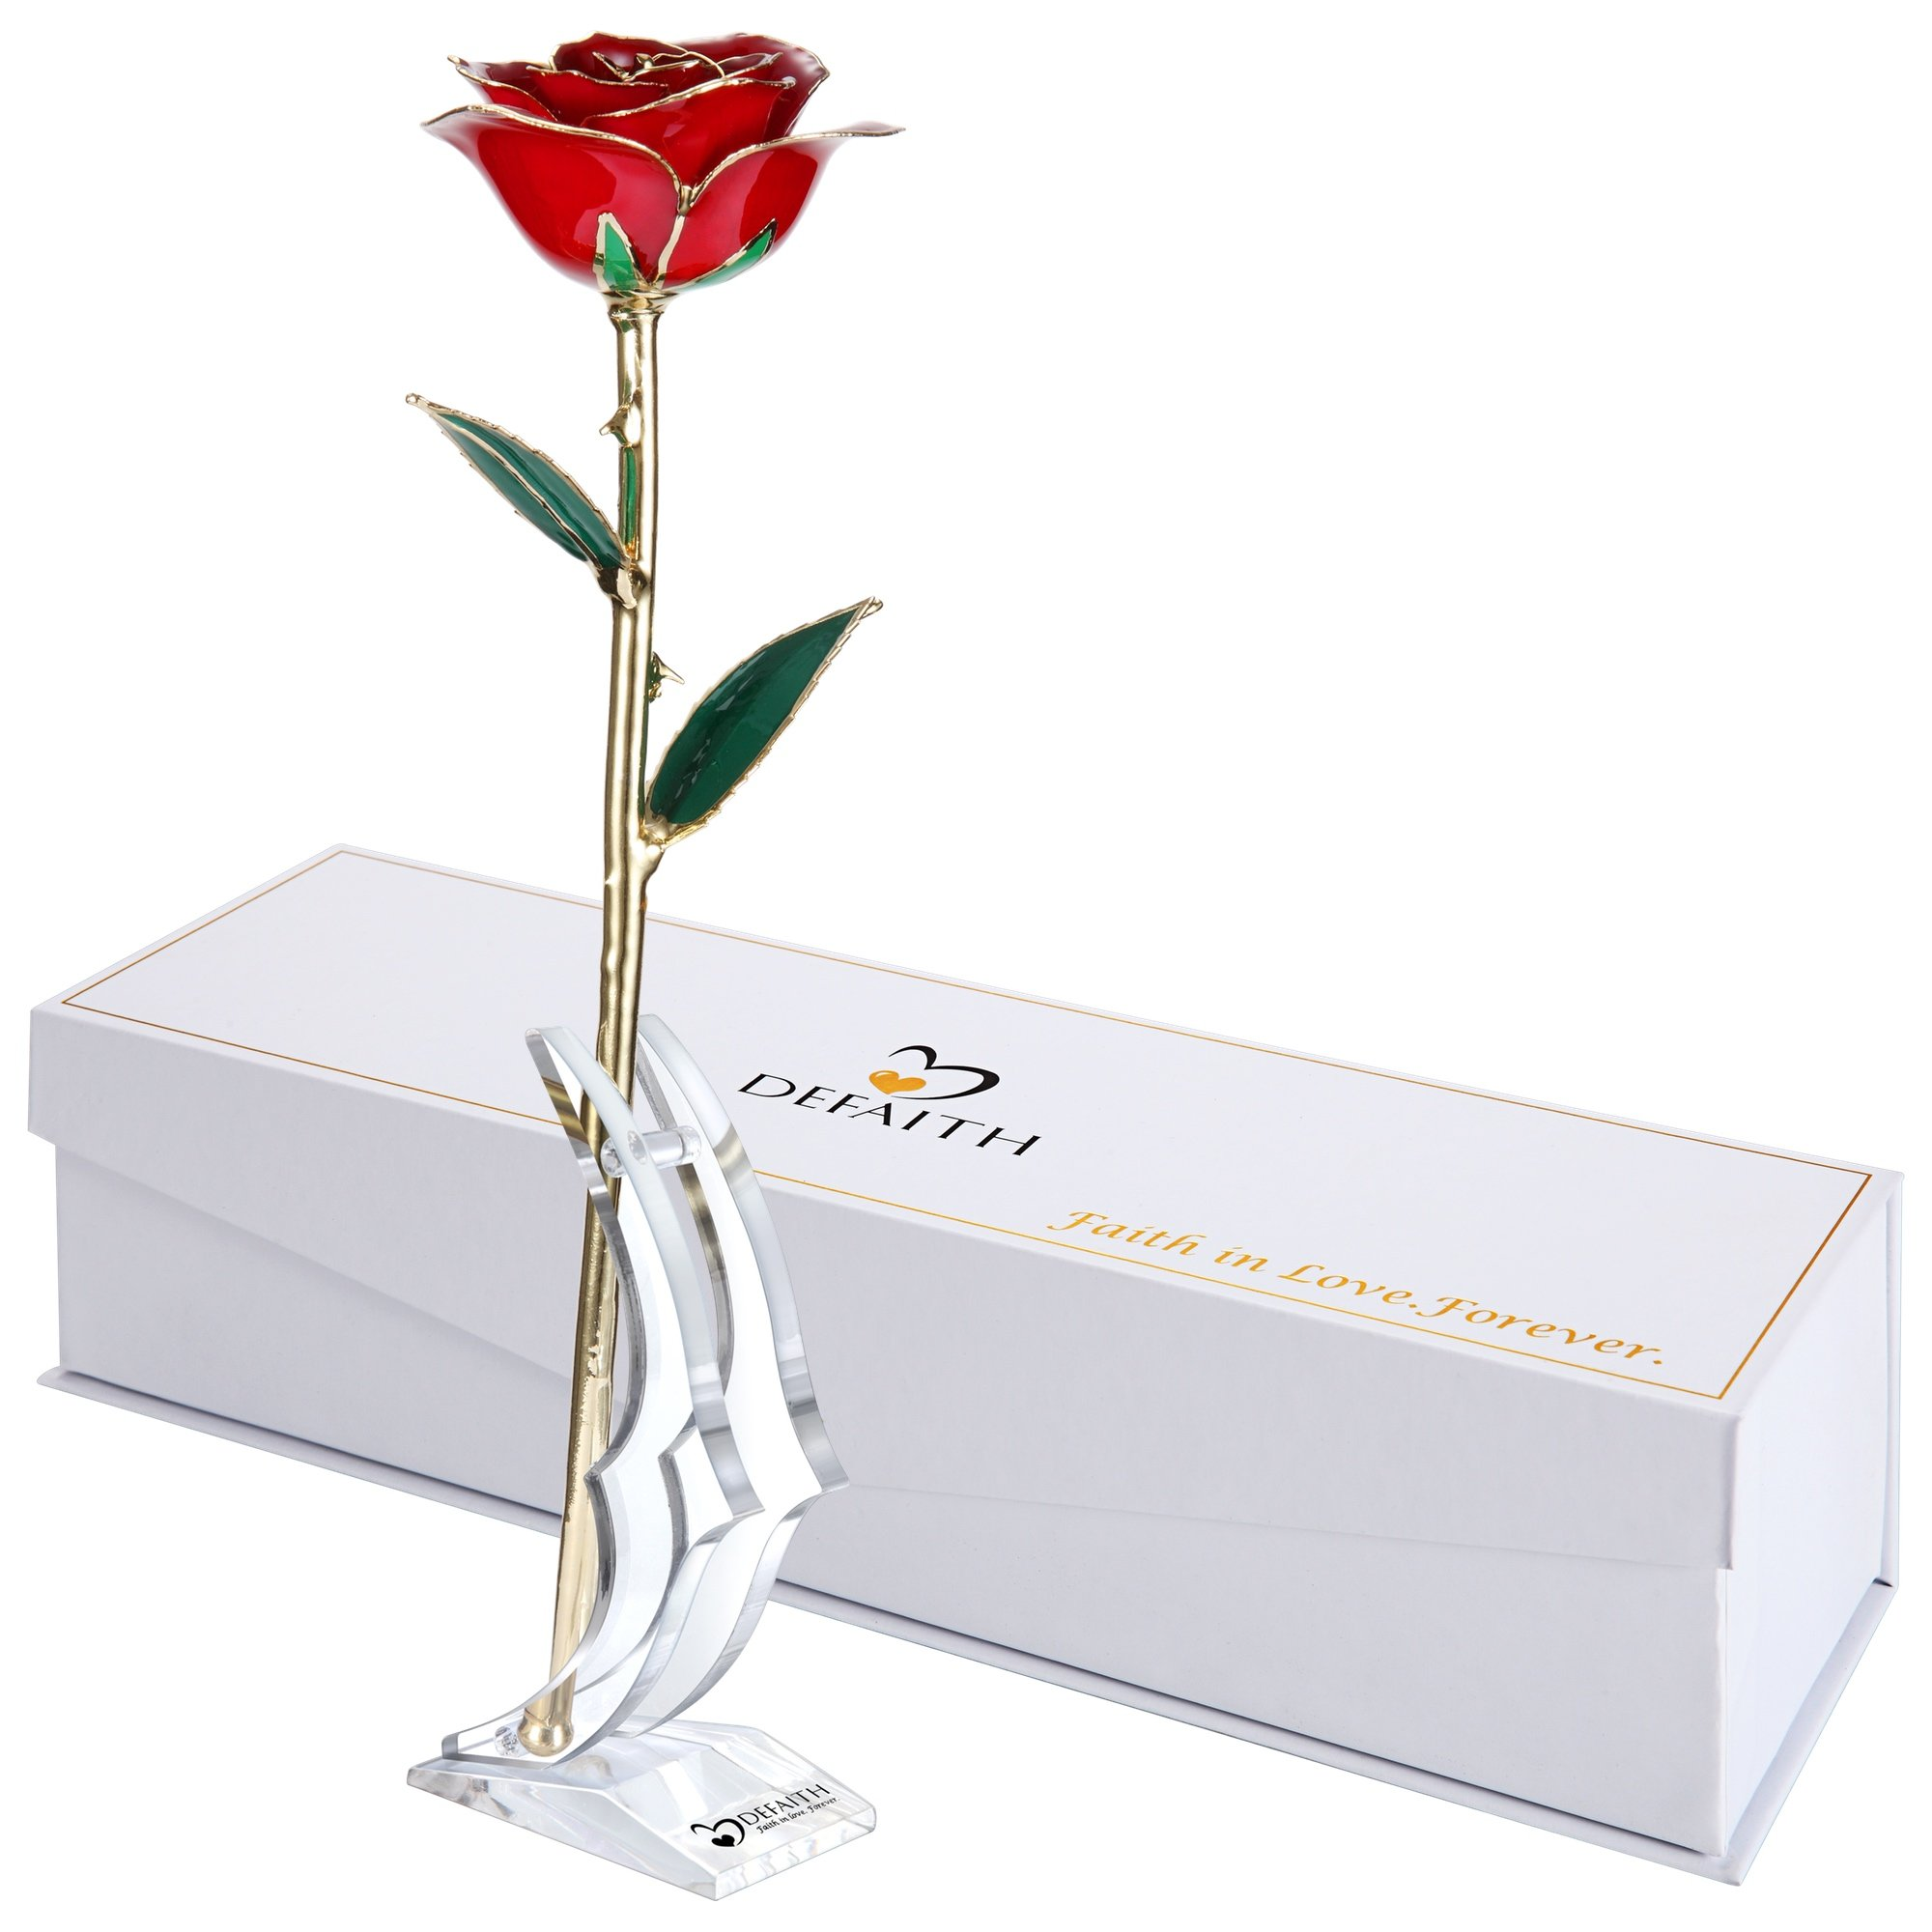 DeFaith 24K Gold Rose Made from Real Fresh Long Stem Rose Flower, Great for Her, Red with Stand